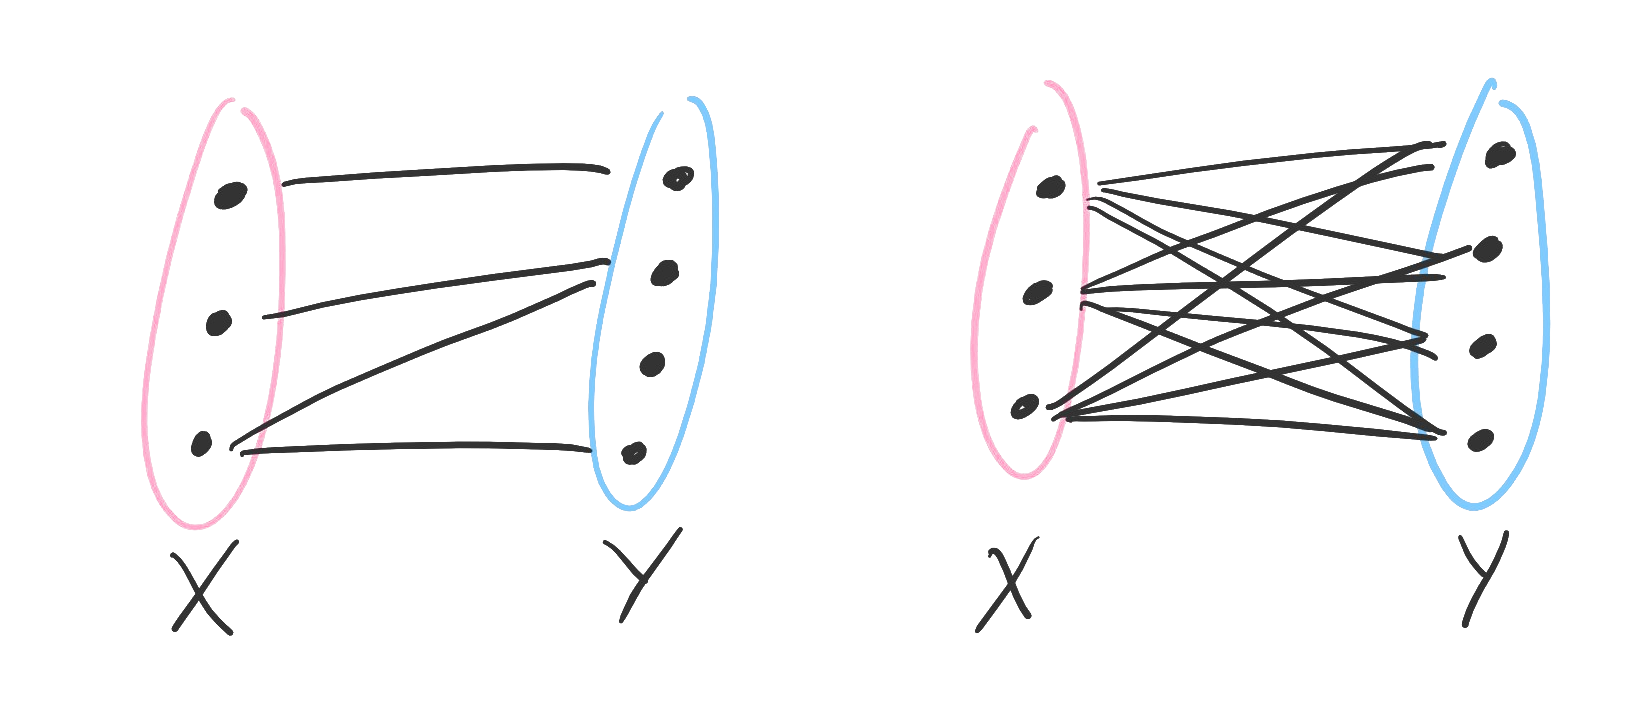 On the left, many objects are each paired with an object (universal-existential). On the right, many objects are paired with many objects (universal-universal).